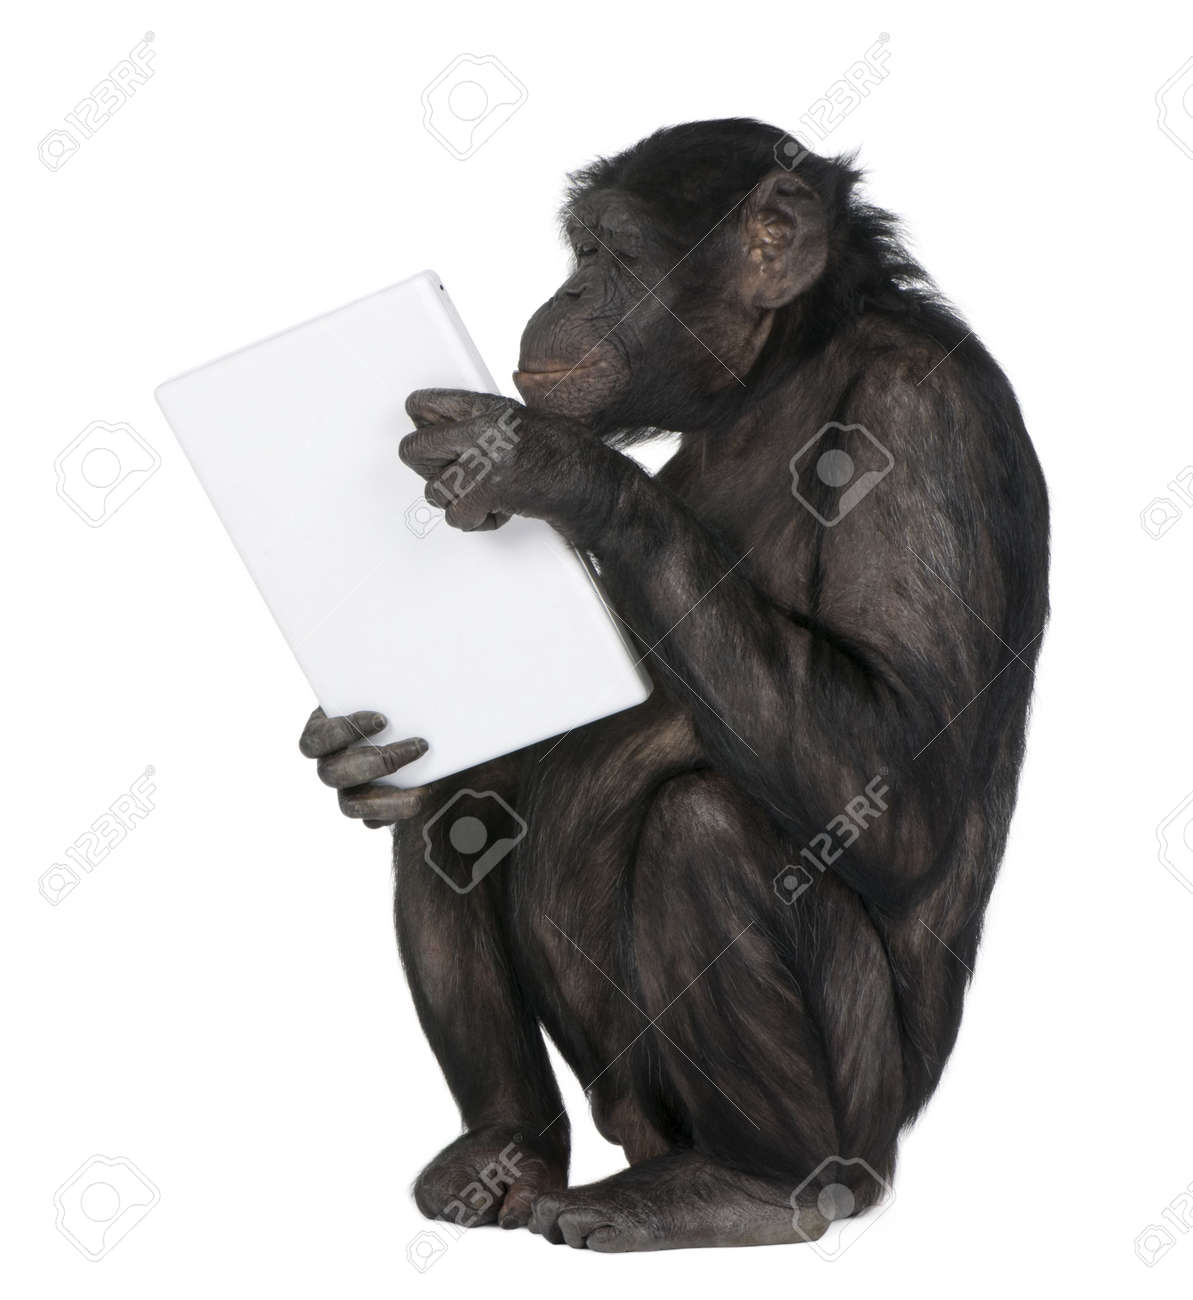 http://previews.123rf.com/images/isselee/isselee0909/isselee090900076/5497046-monkey-Mixed-Breed-between-Chimpanzee-and-Bonobo-playing-with-a-laptop-20-years-old-in-front-of-a-wh-Stock-Photo.jpg